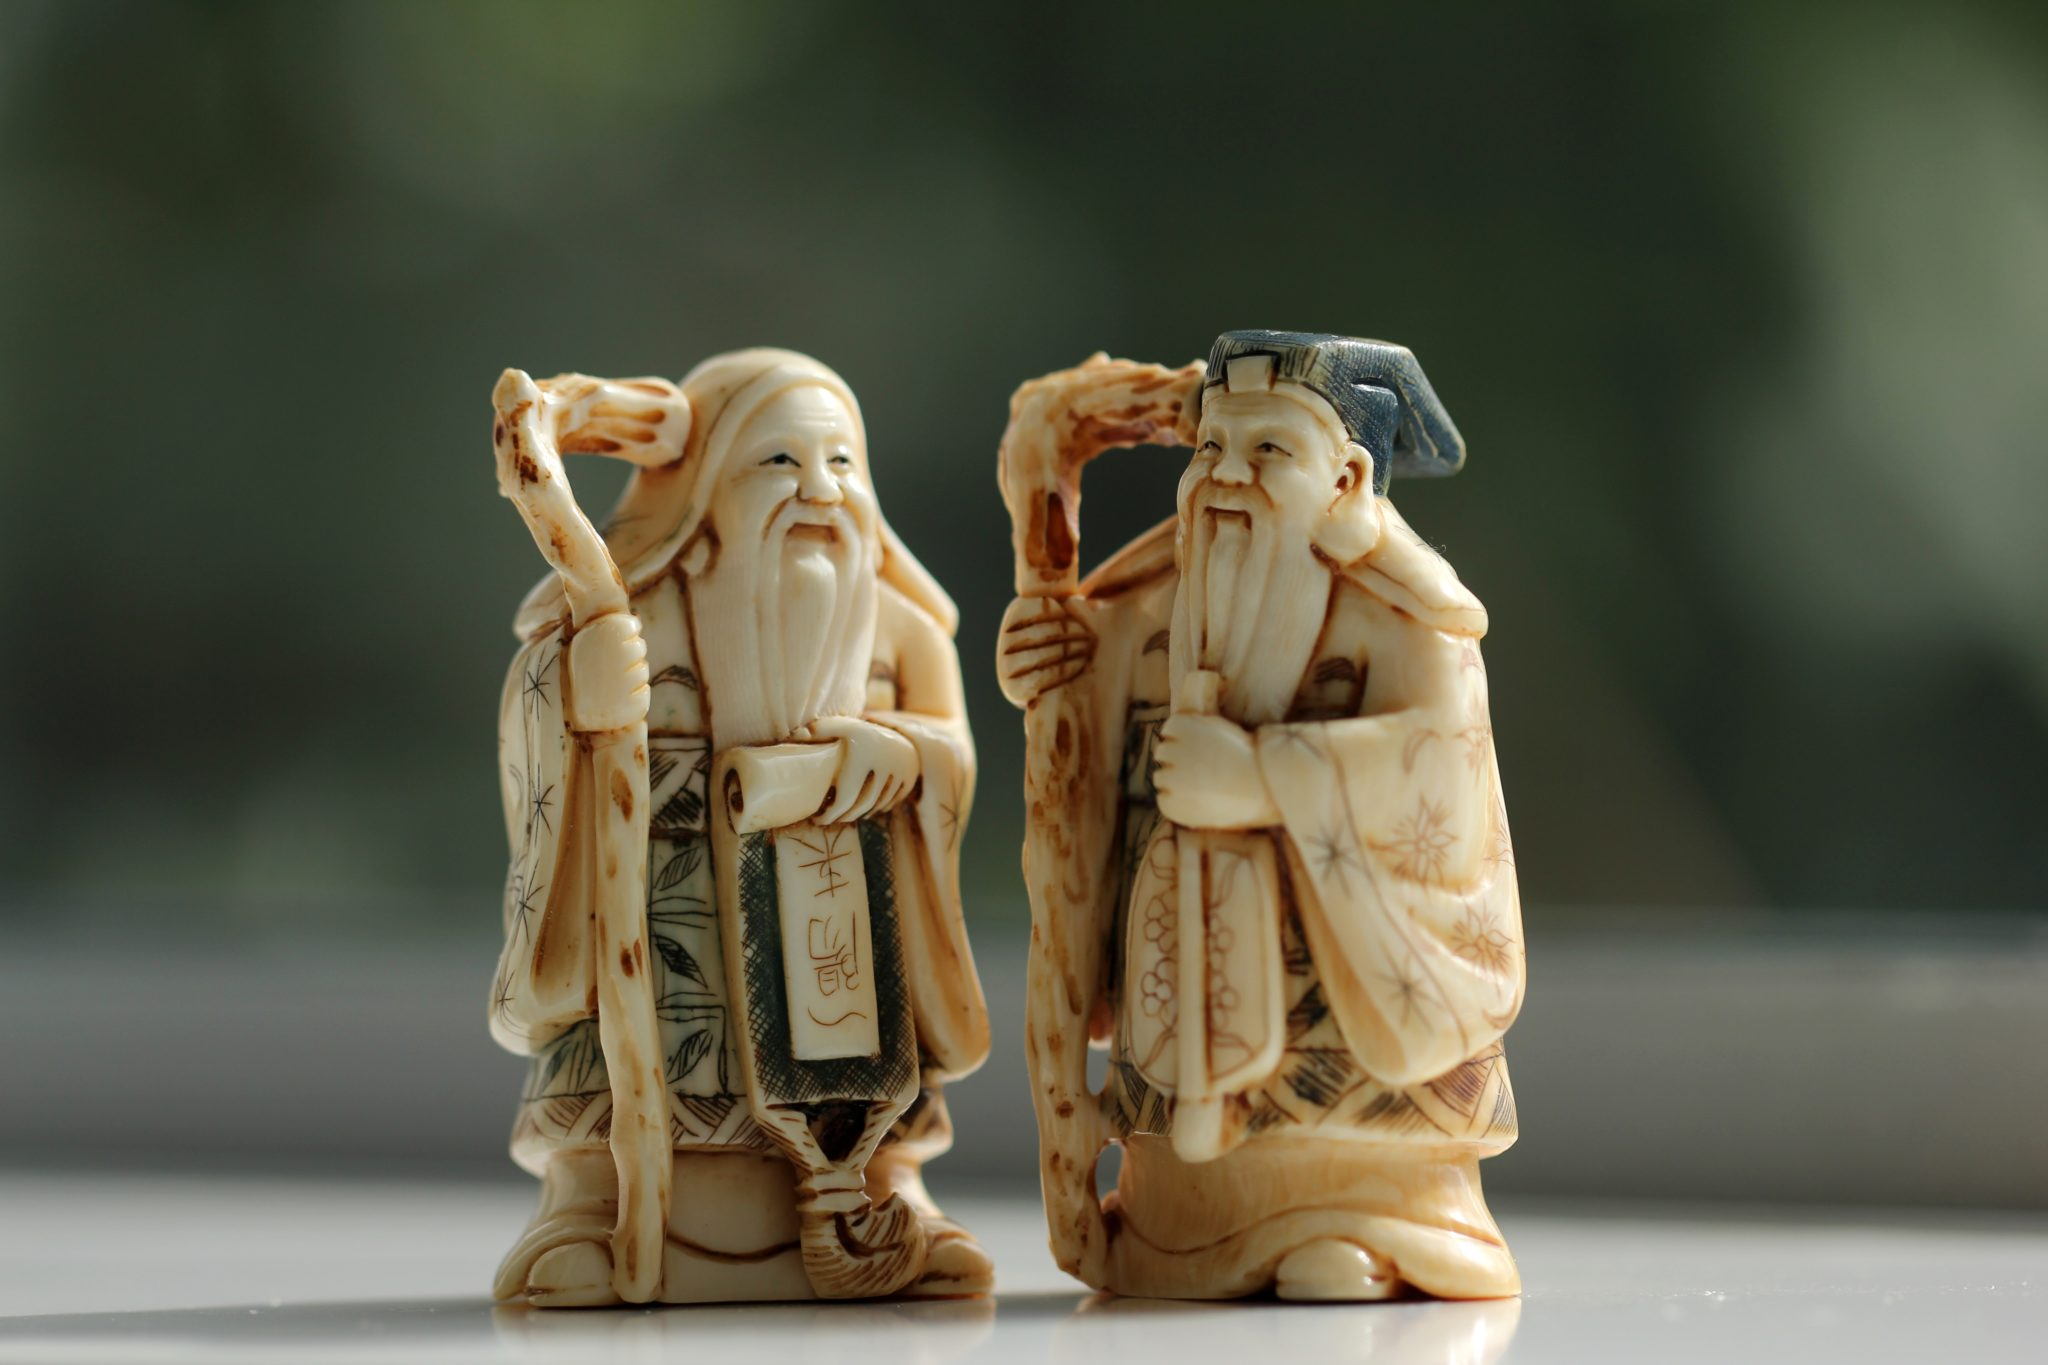 Two figures of wise men